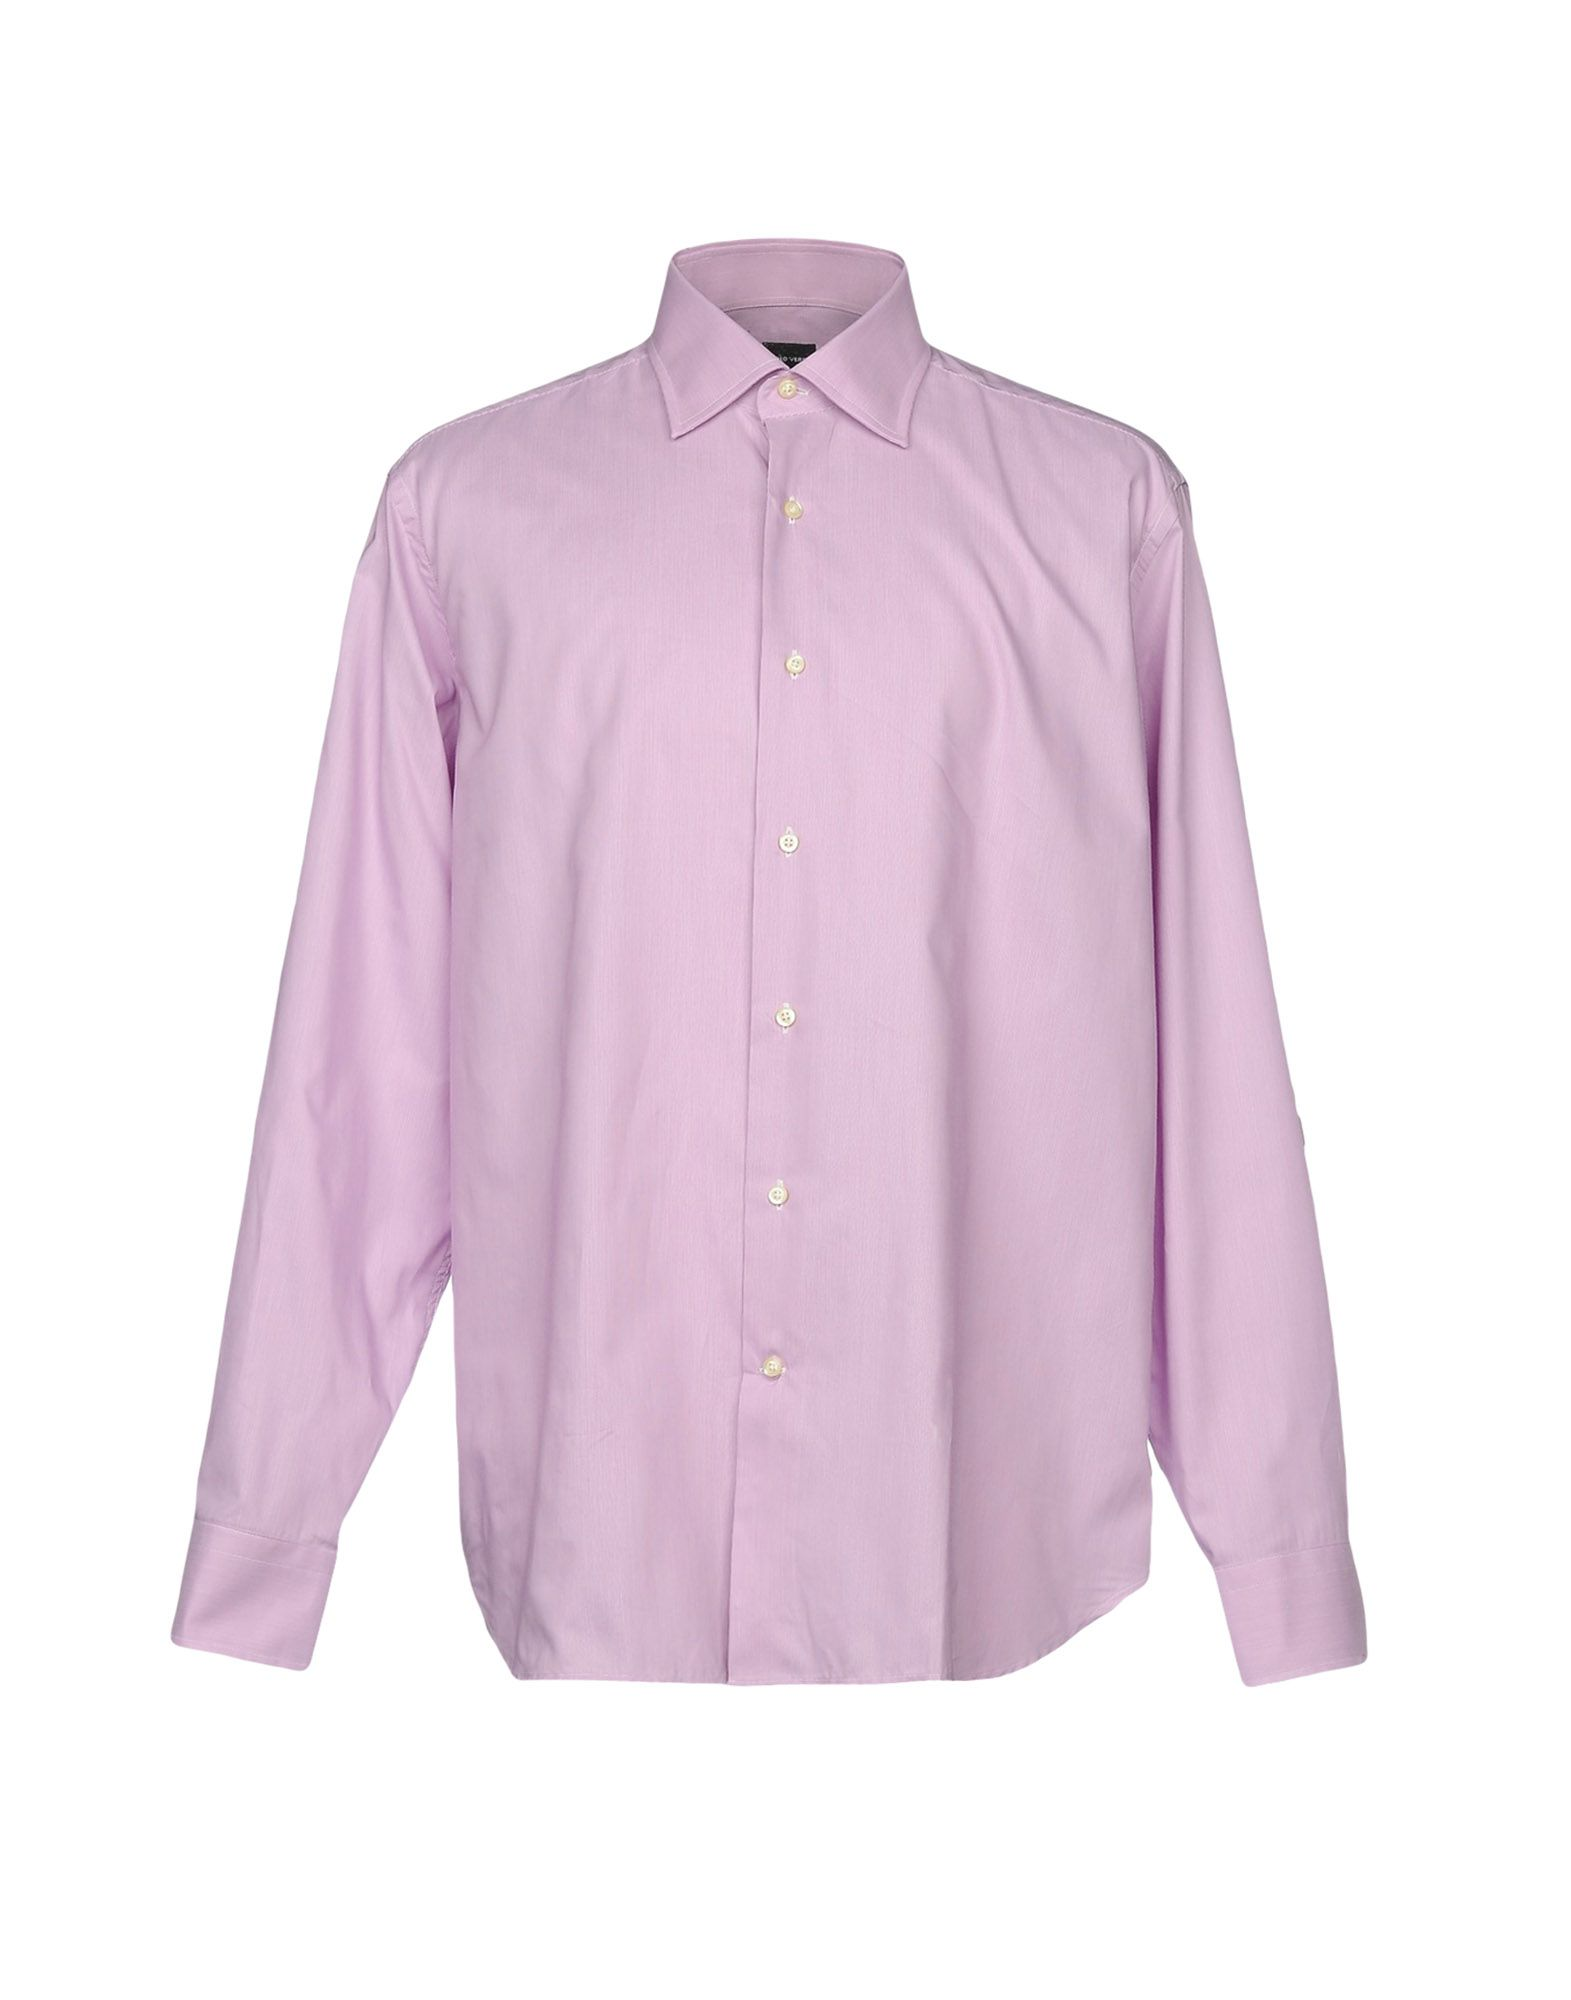 CAMISAS - Camisas Paolo Verri mLu4gxyTtp